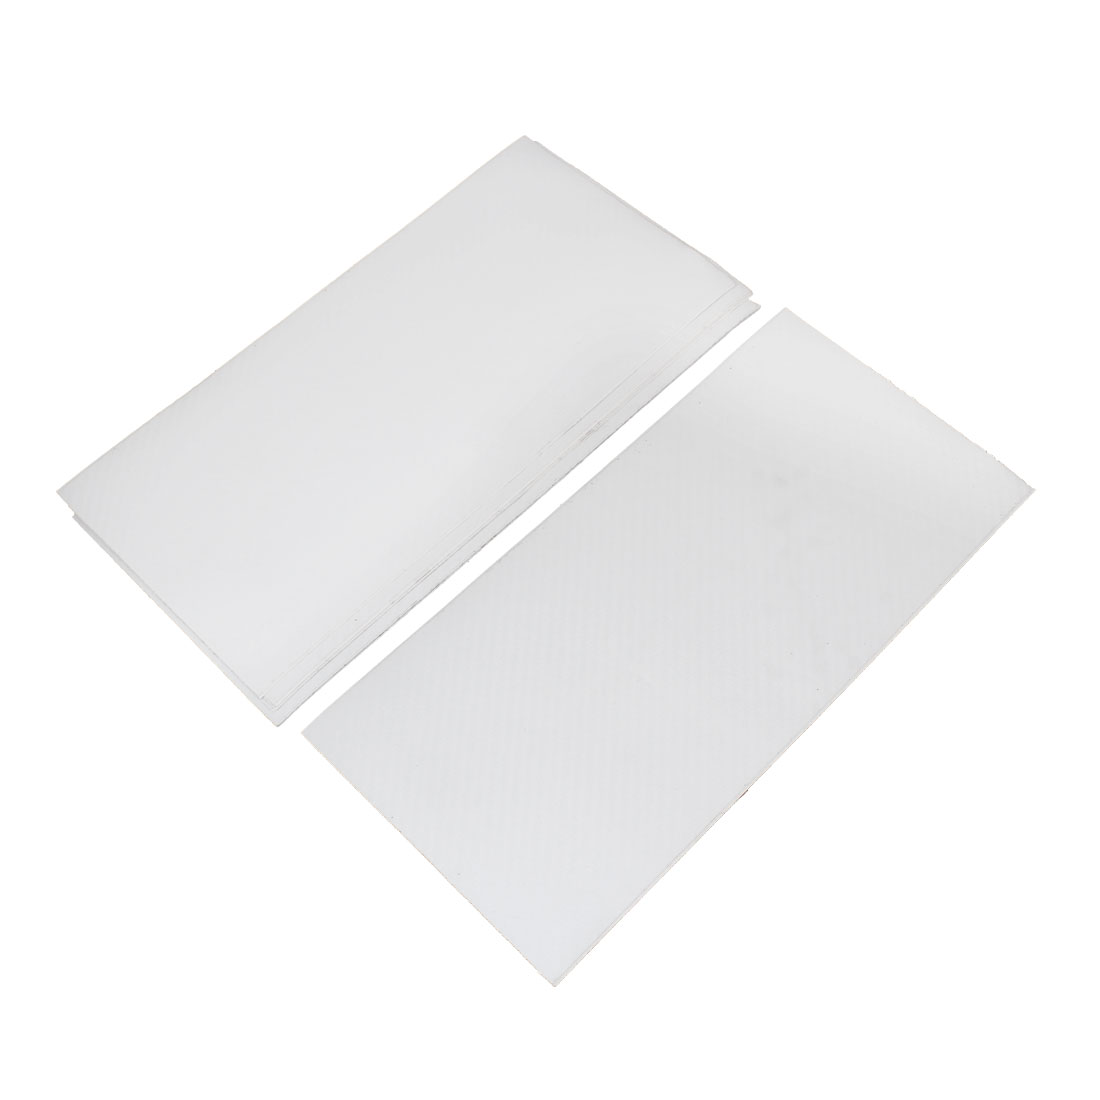 10pcs 300 x 143mm Self Adhesive Carbon Fiber Protective Film Sticker White for Car